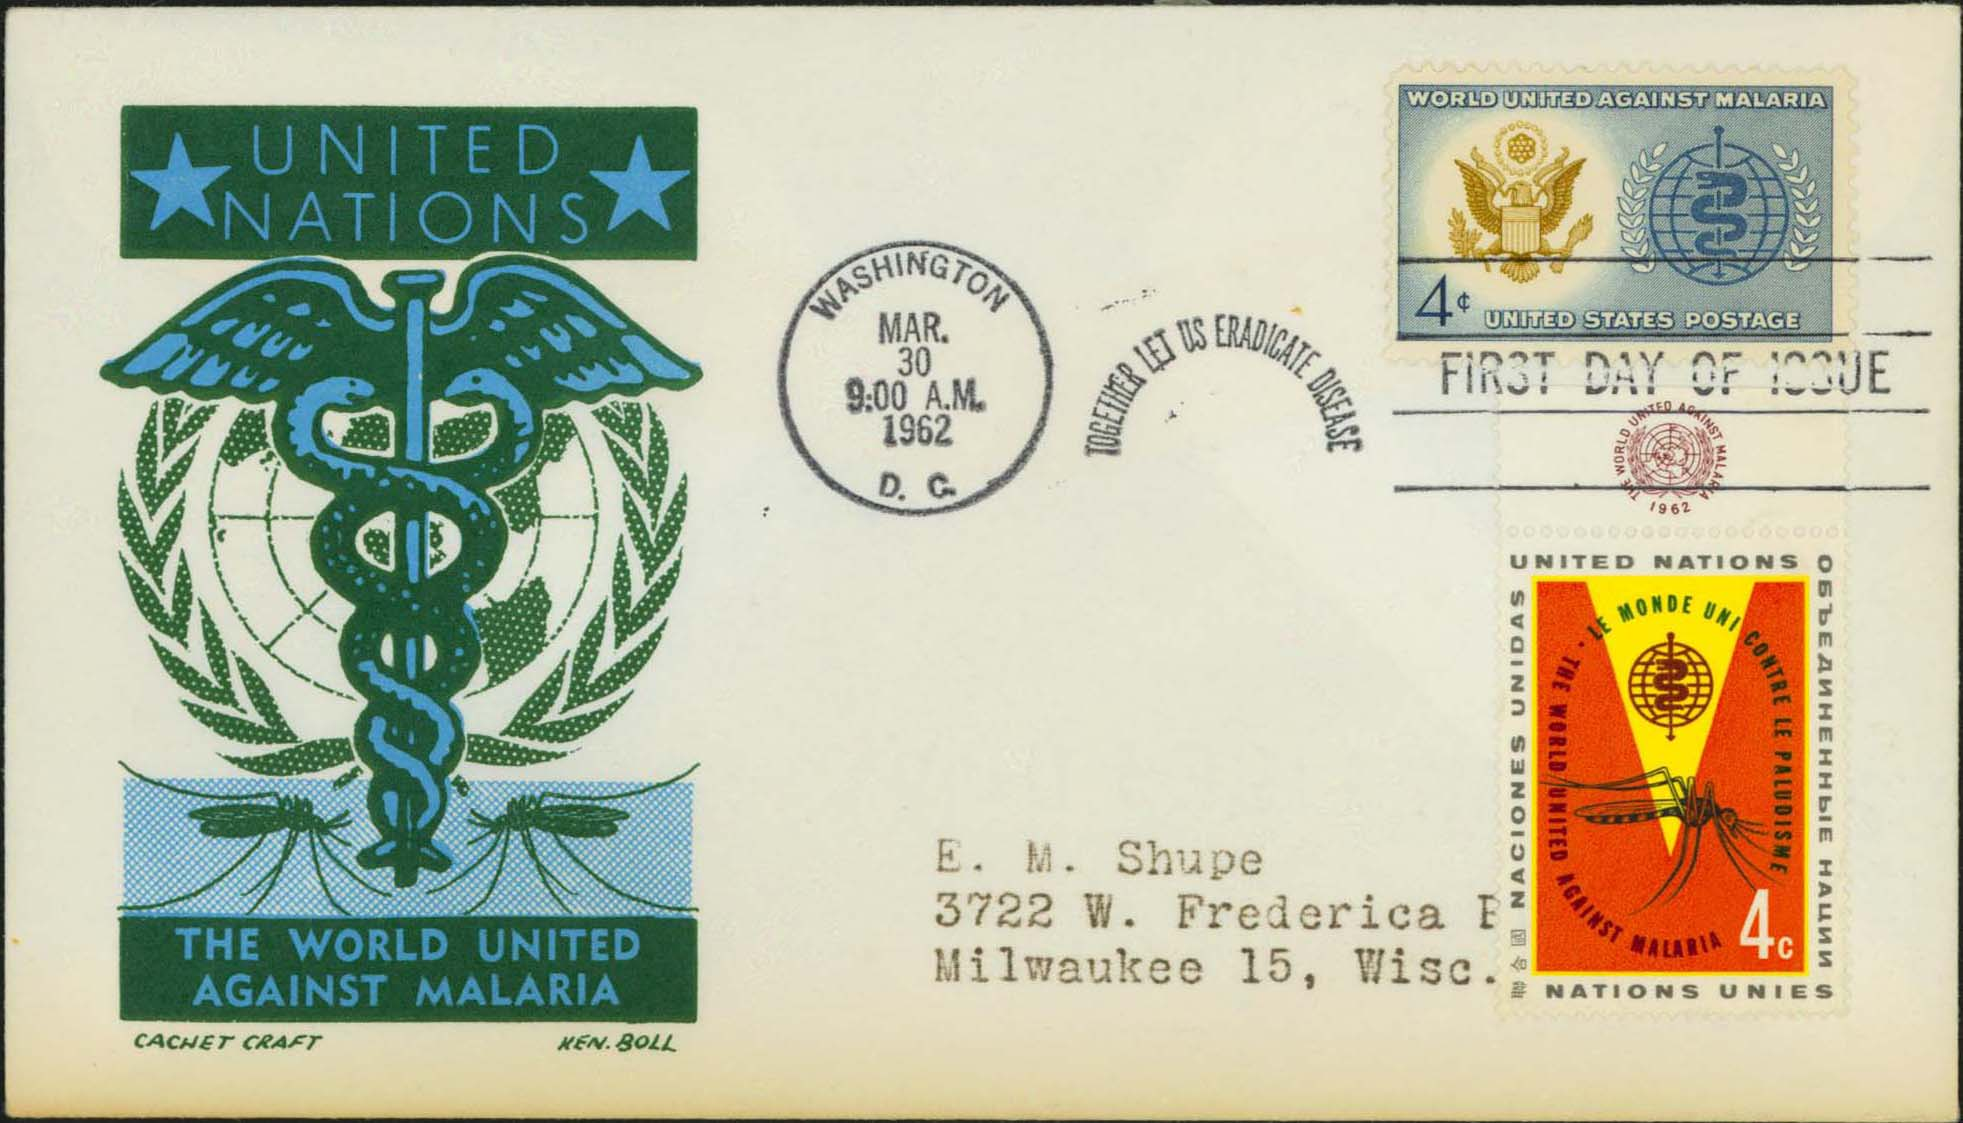 Ken Boll FDC Cachet (Blue/Green) w/ United Nations Scott 102 And United States Scott 1194